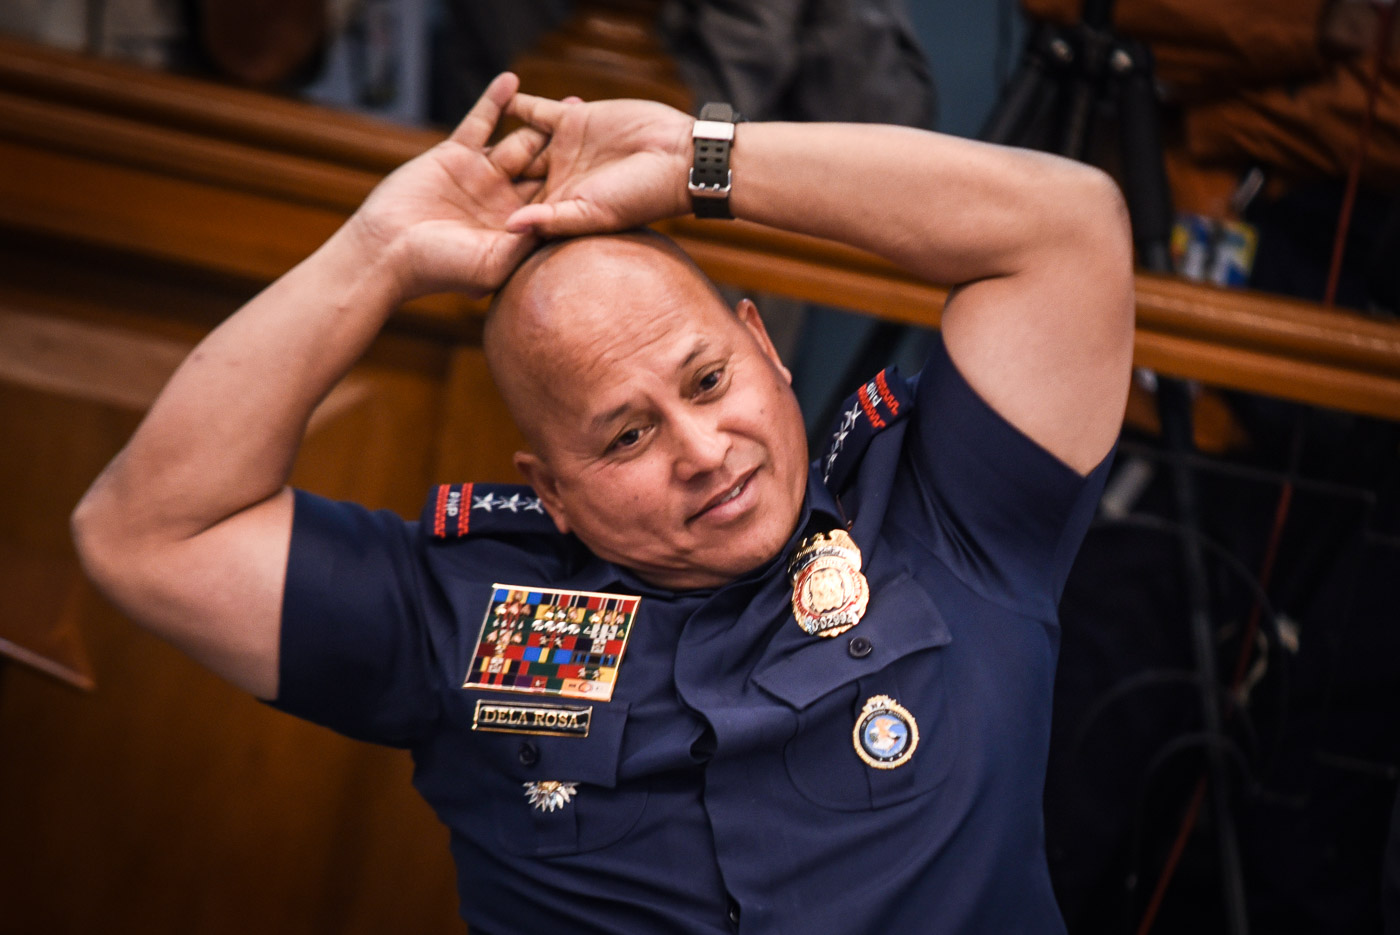 TAGAYTAY TRIP. PNP chief Ronald dela Rosa says he will treat SAF troops himself if President Rodrigo Duterte will not. File photo by LeAnne Jazul/Rappler